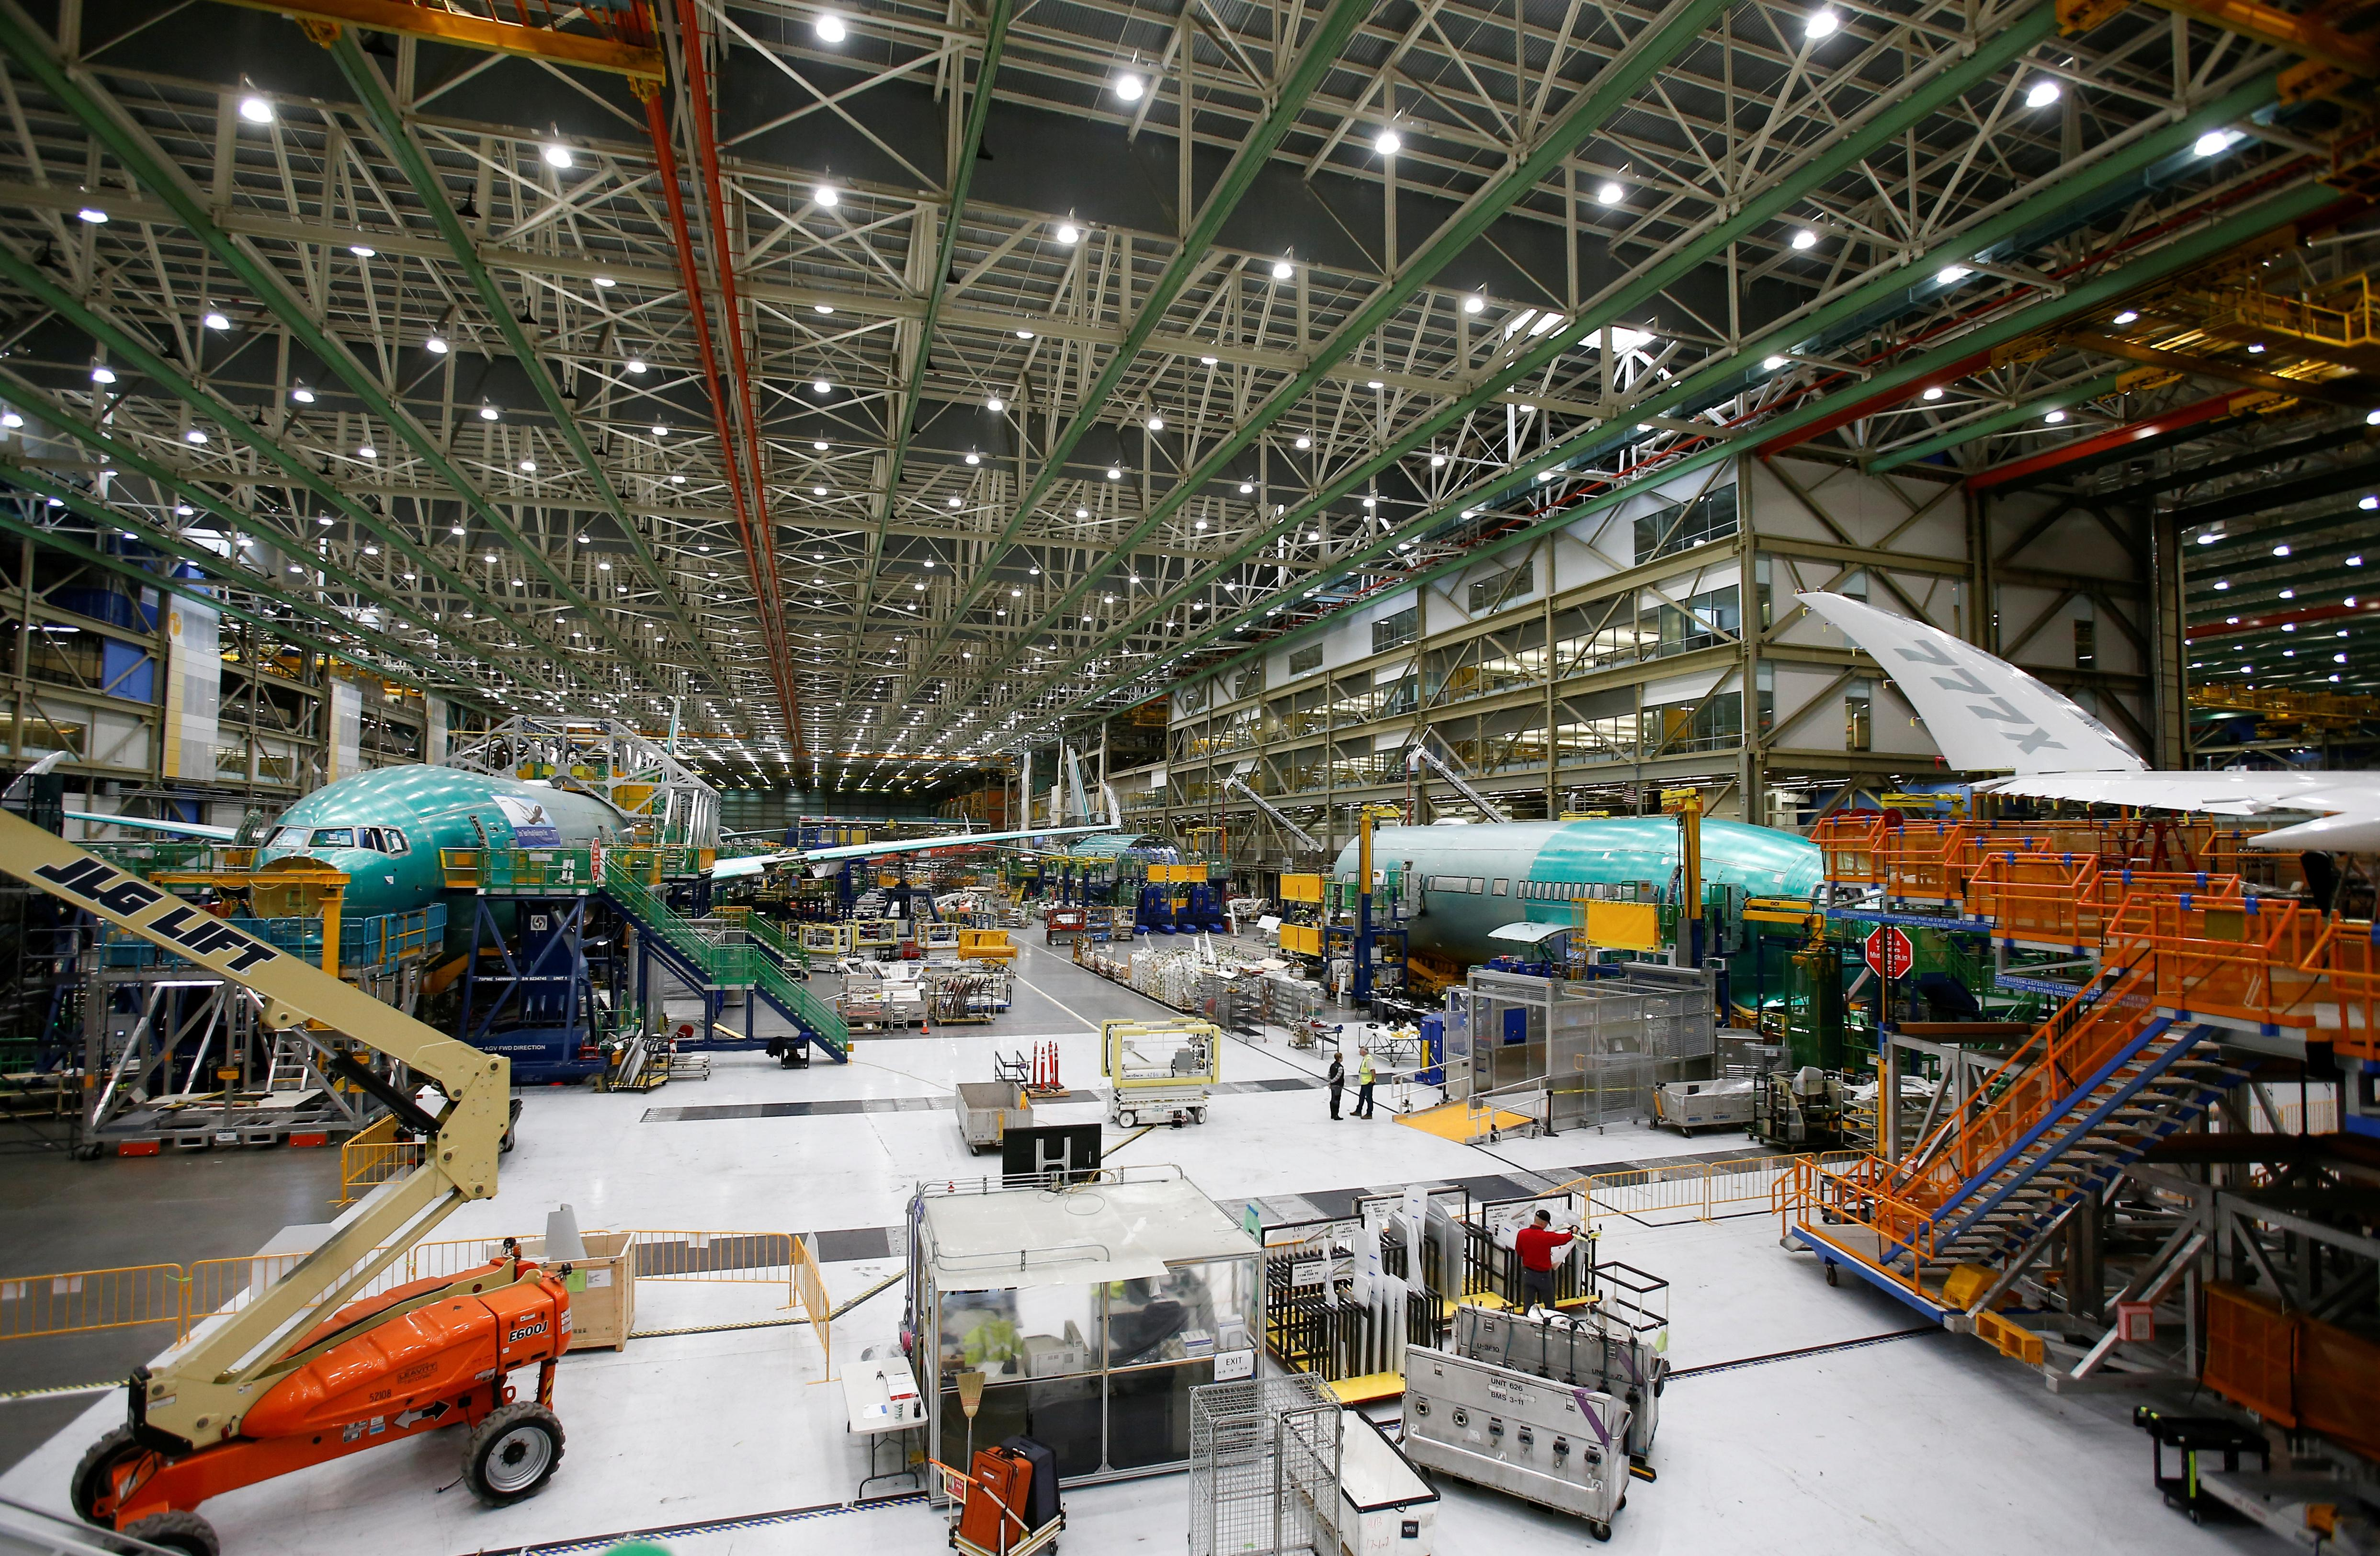 Boeing suspends load test for new 777X aircraft